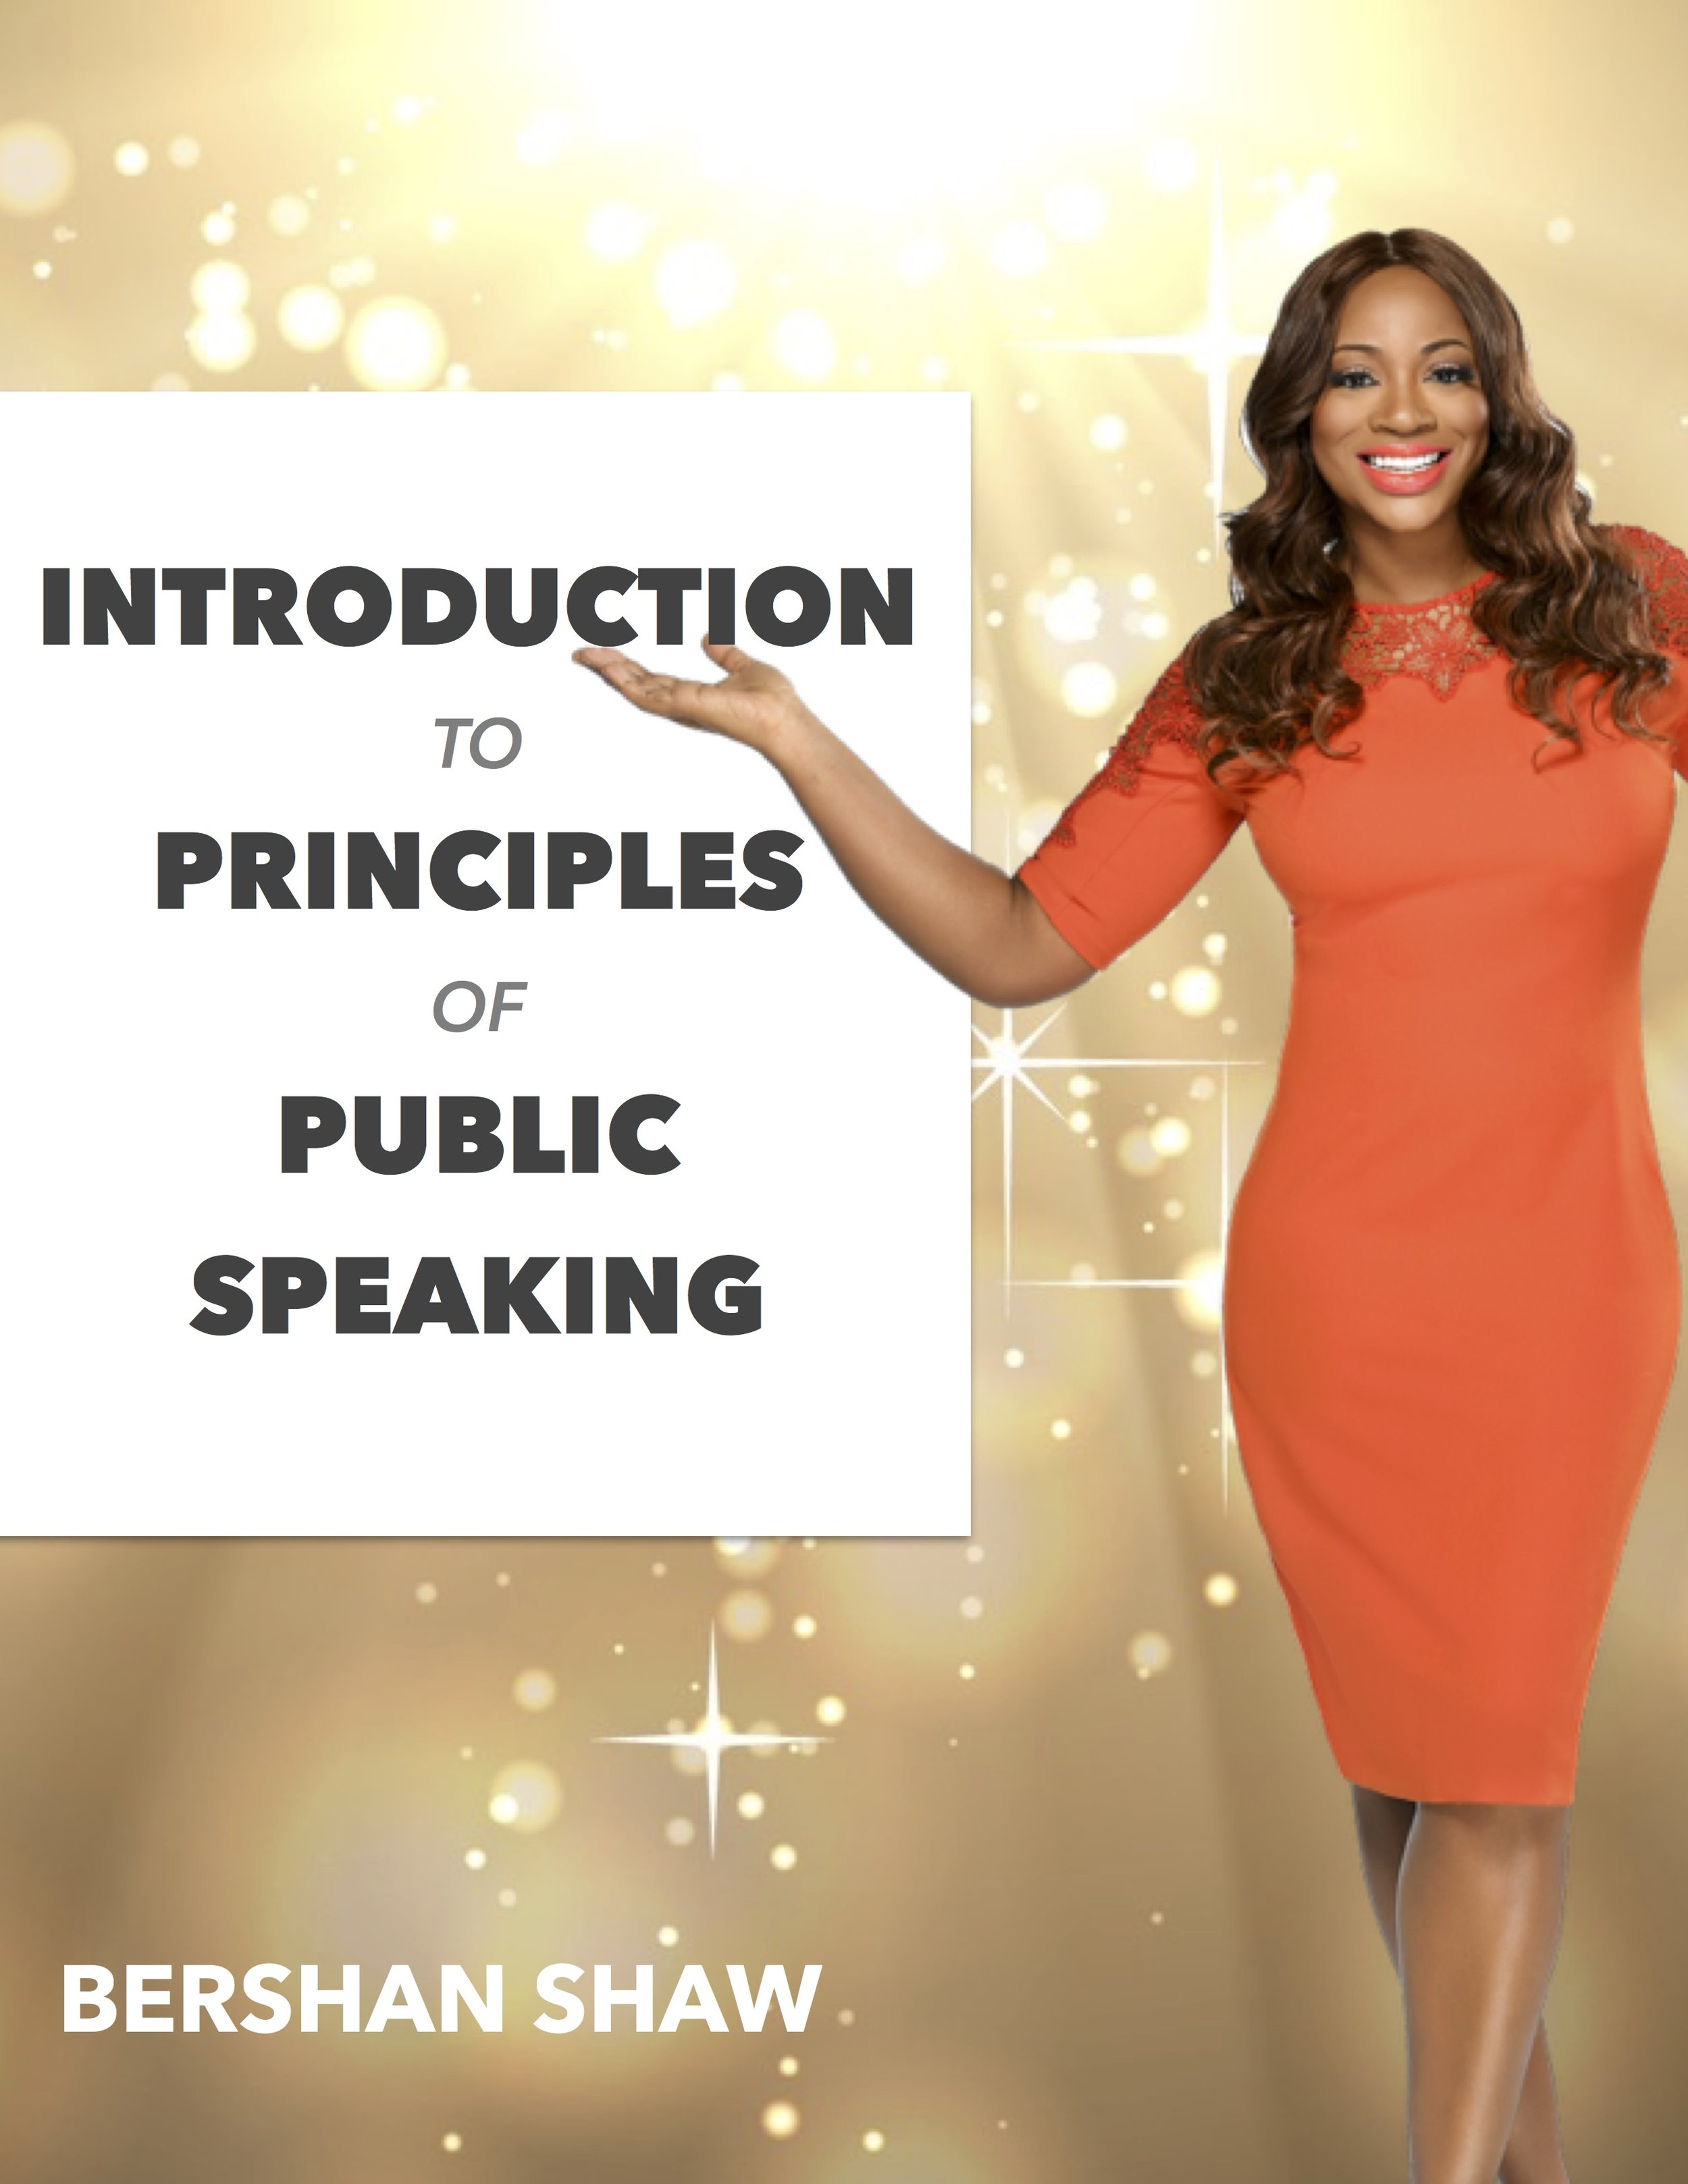 Available where I speak - Coming soon to Amazon